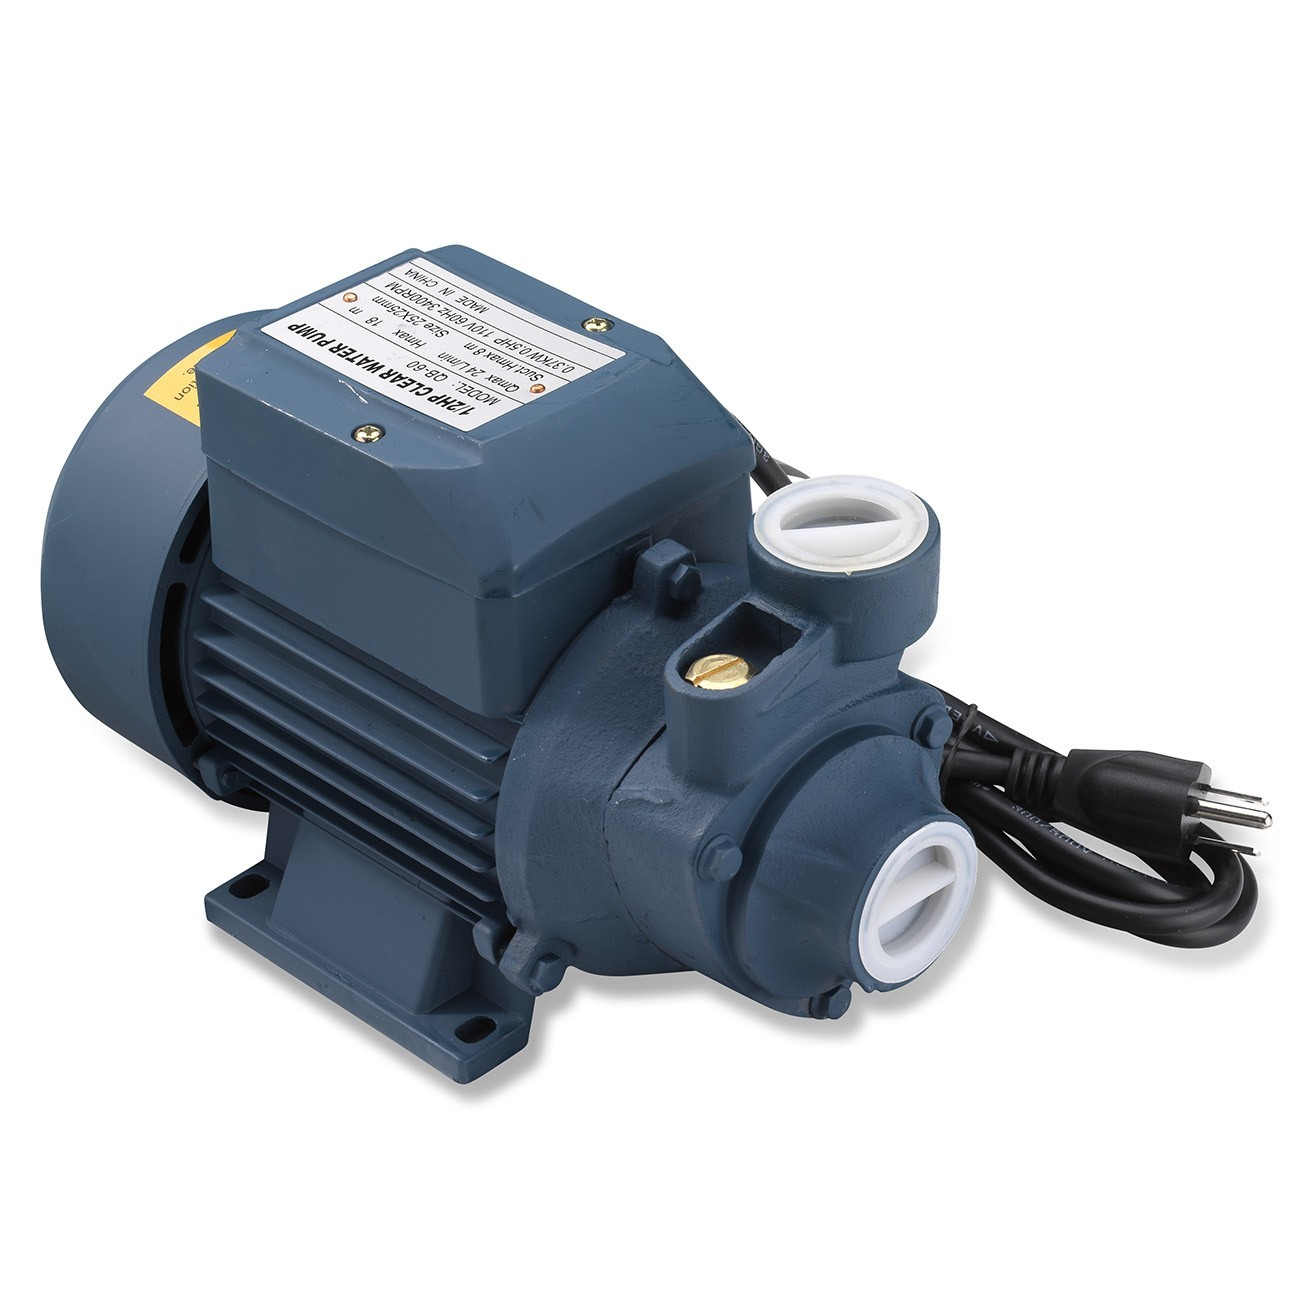 Tooluxe 50635 Electric Centrifugal Clear Water Pump, 0.5 HP   Pools, Ponds, Irrigation, Garden, Sprinkling   380 GPH